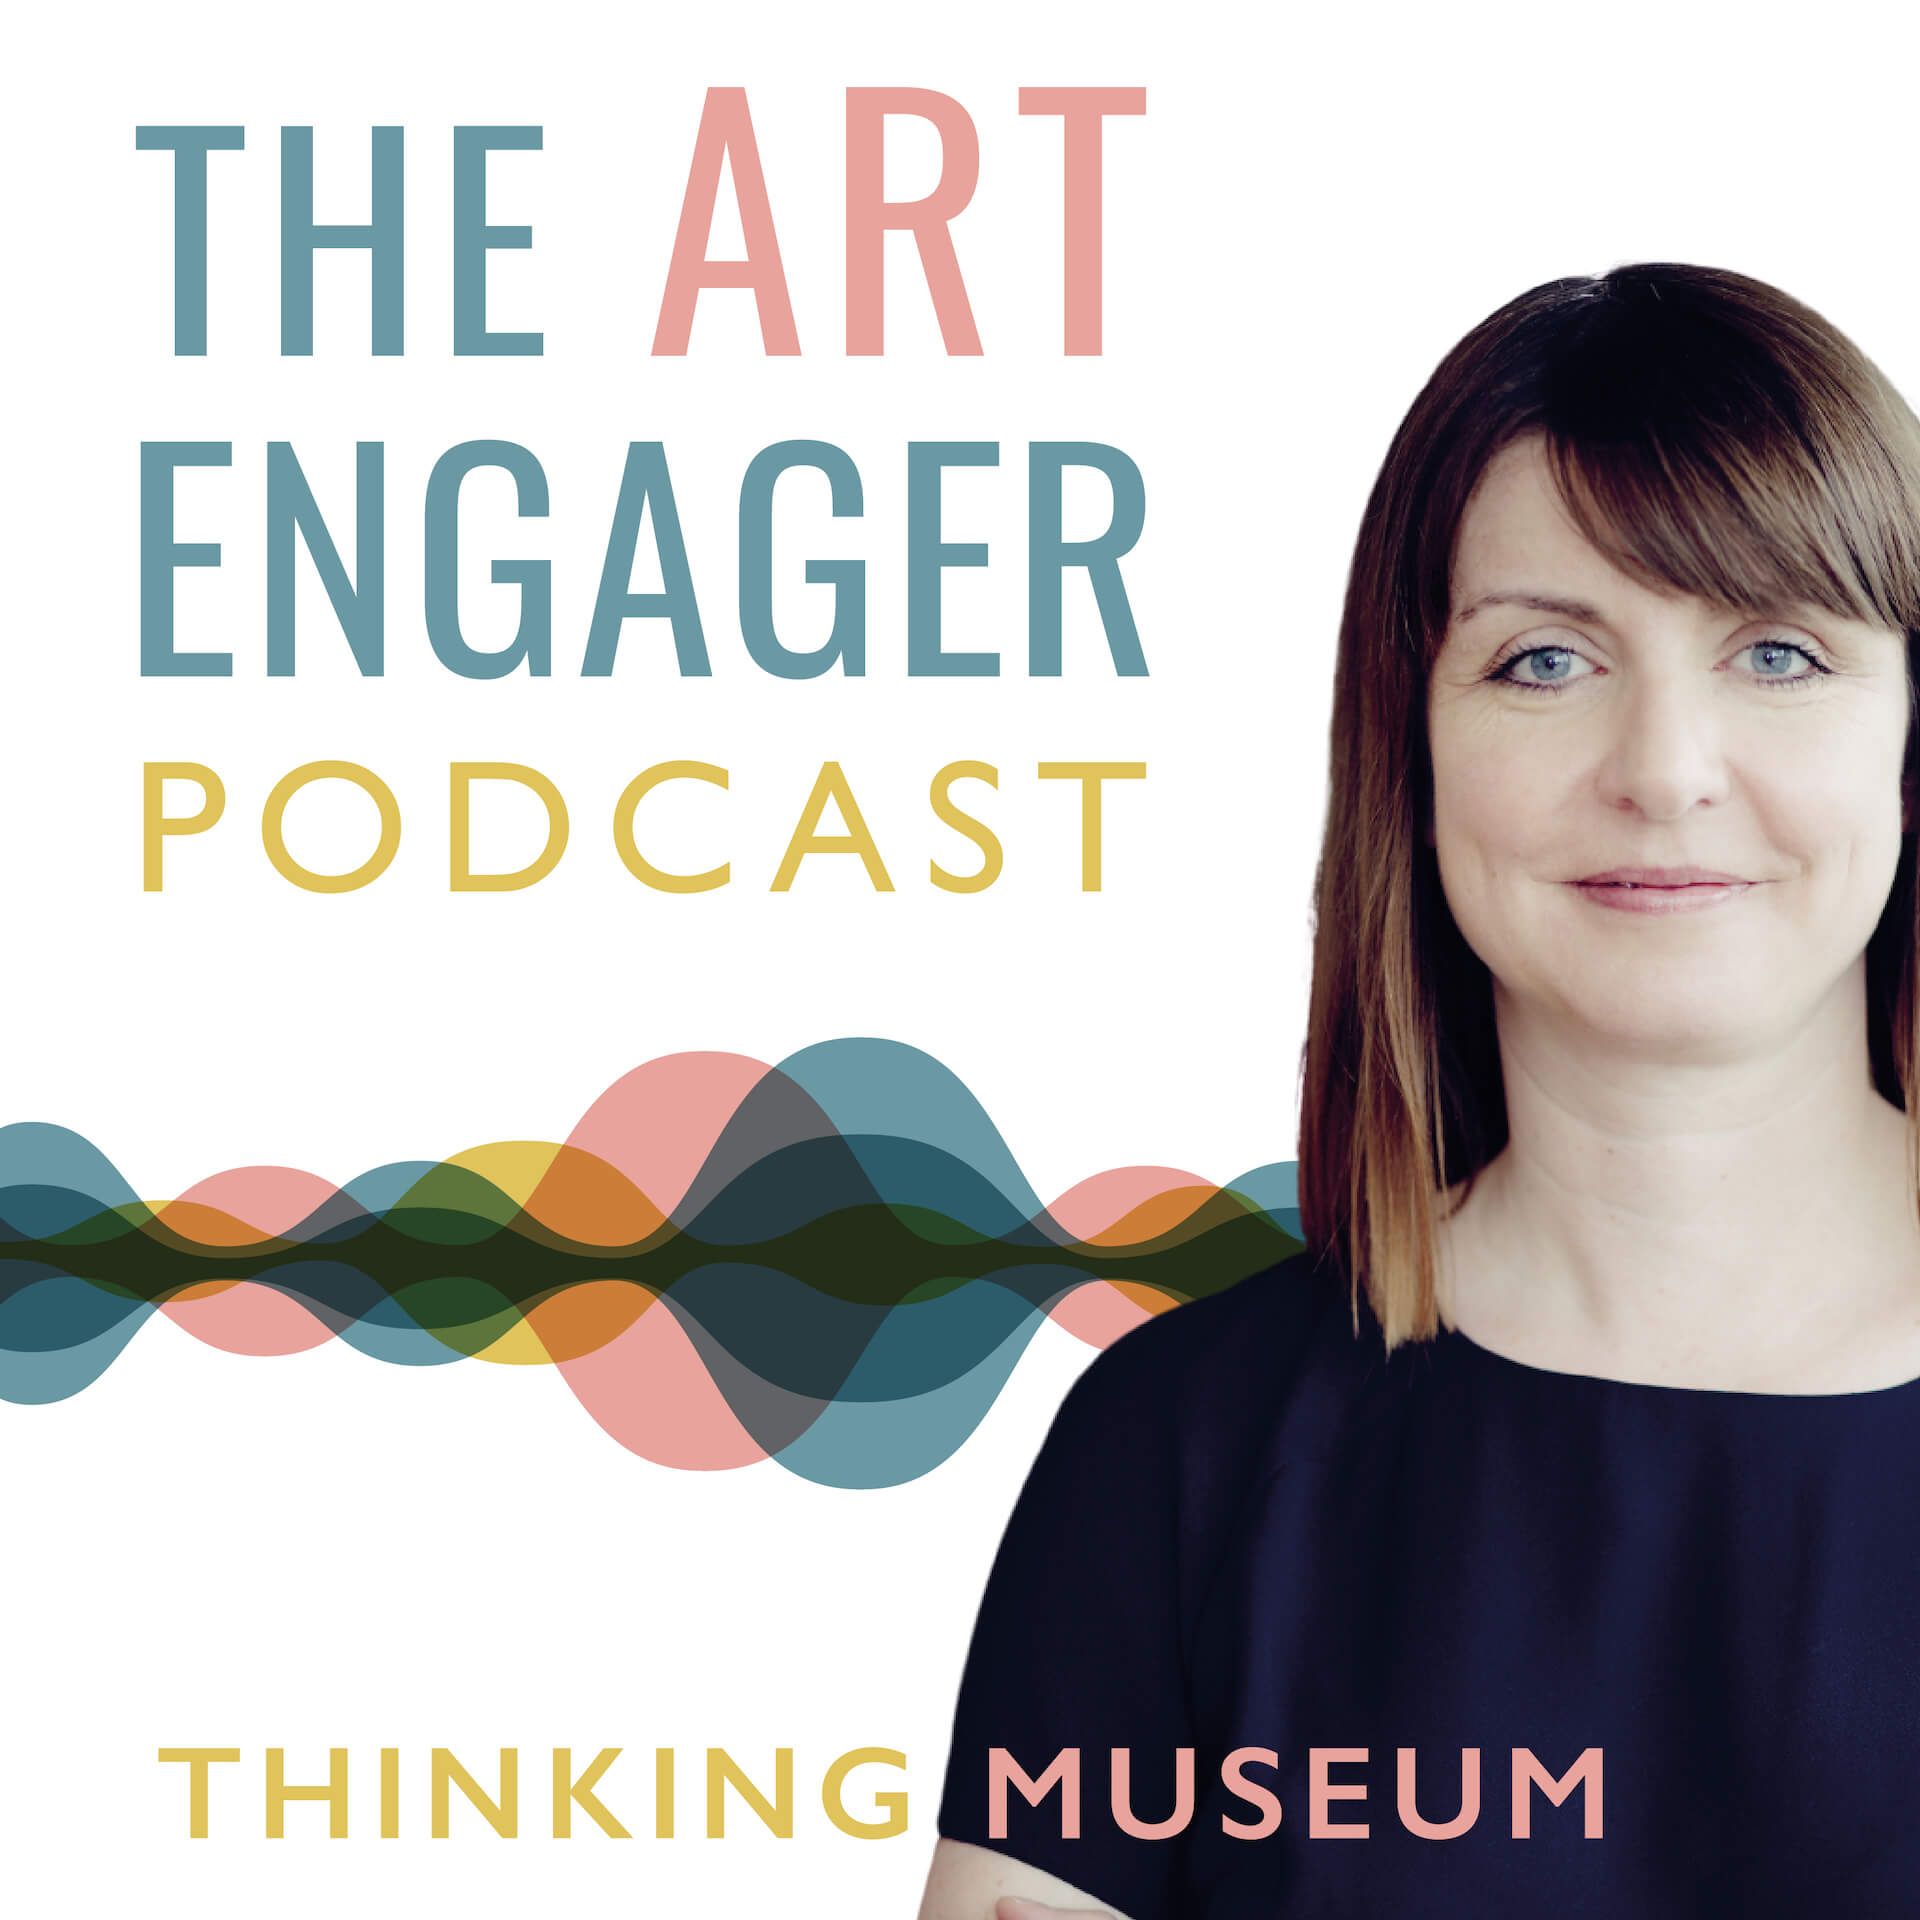 Artwork for podcast The Art Engager